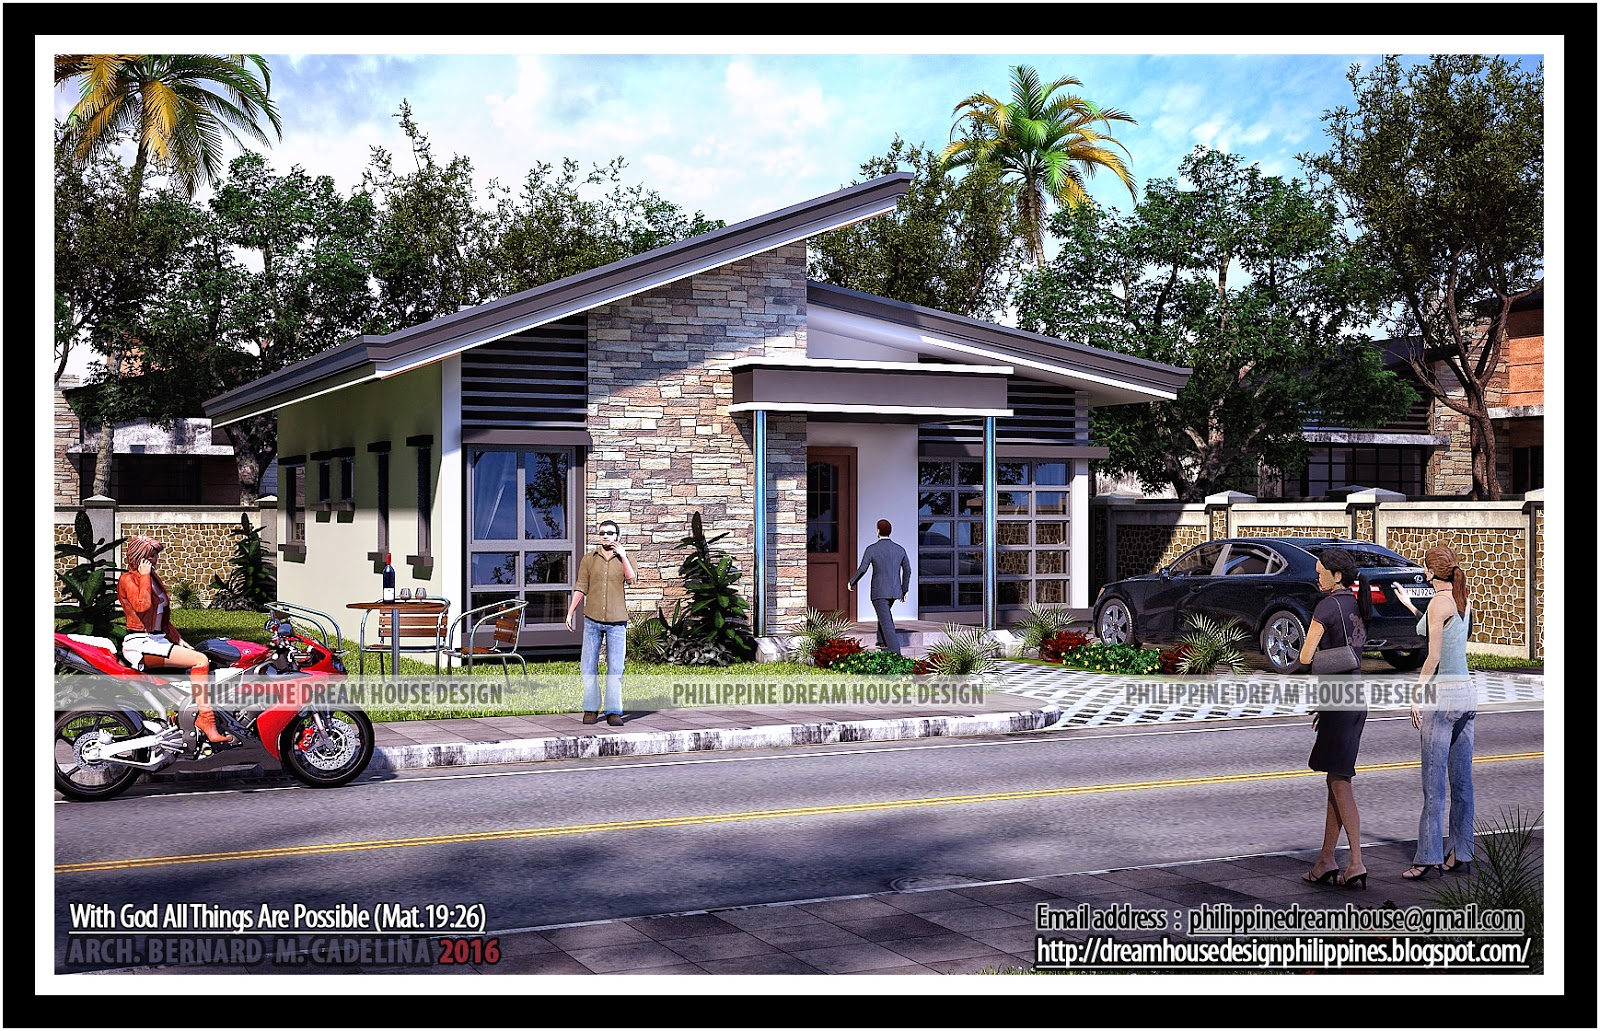 Philippine dream house design two bedroom bungalow house for Small modern bungalow house design